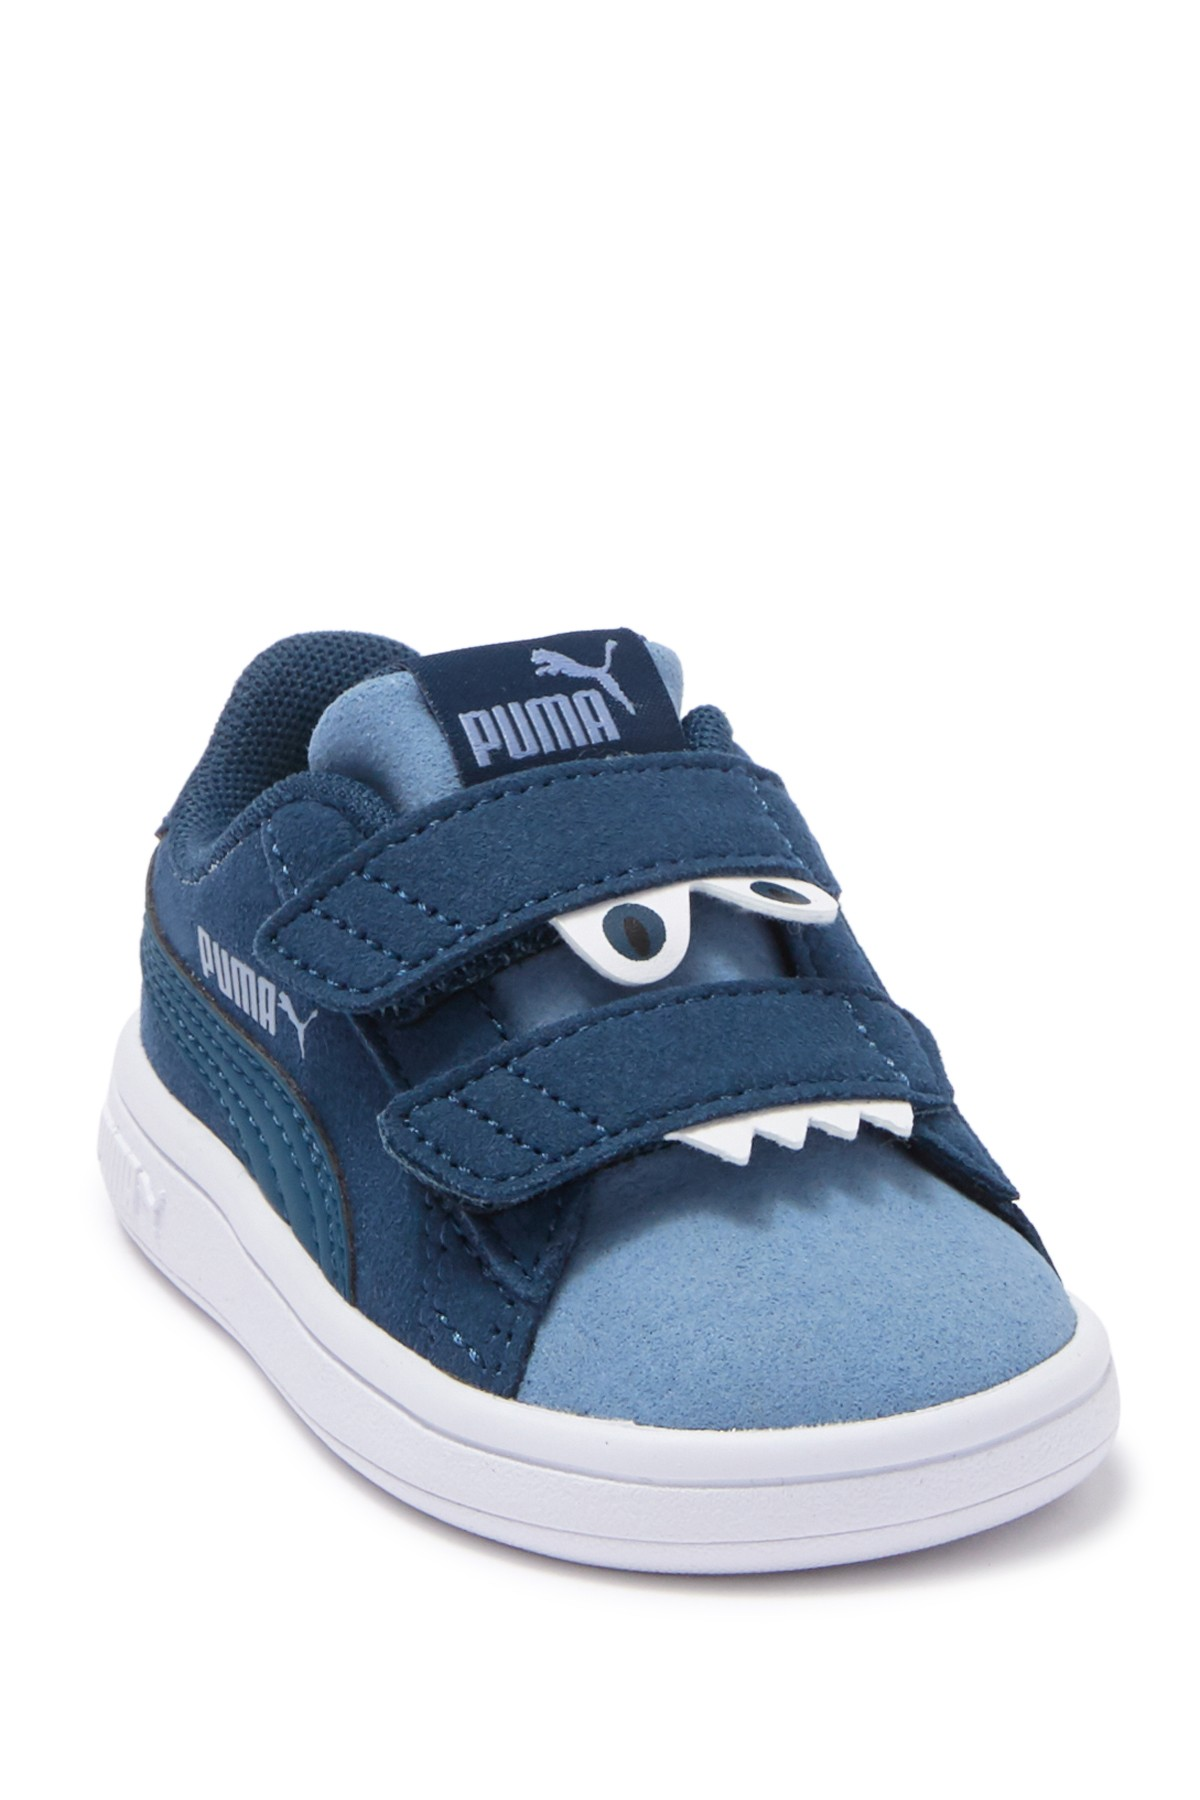 PUMA SMASH V2 MONSTER 36968103